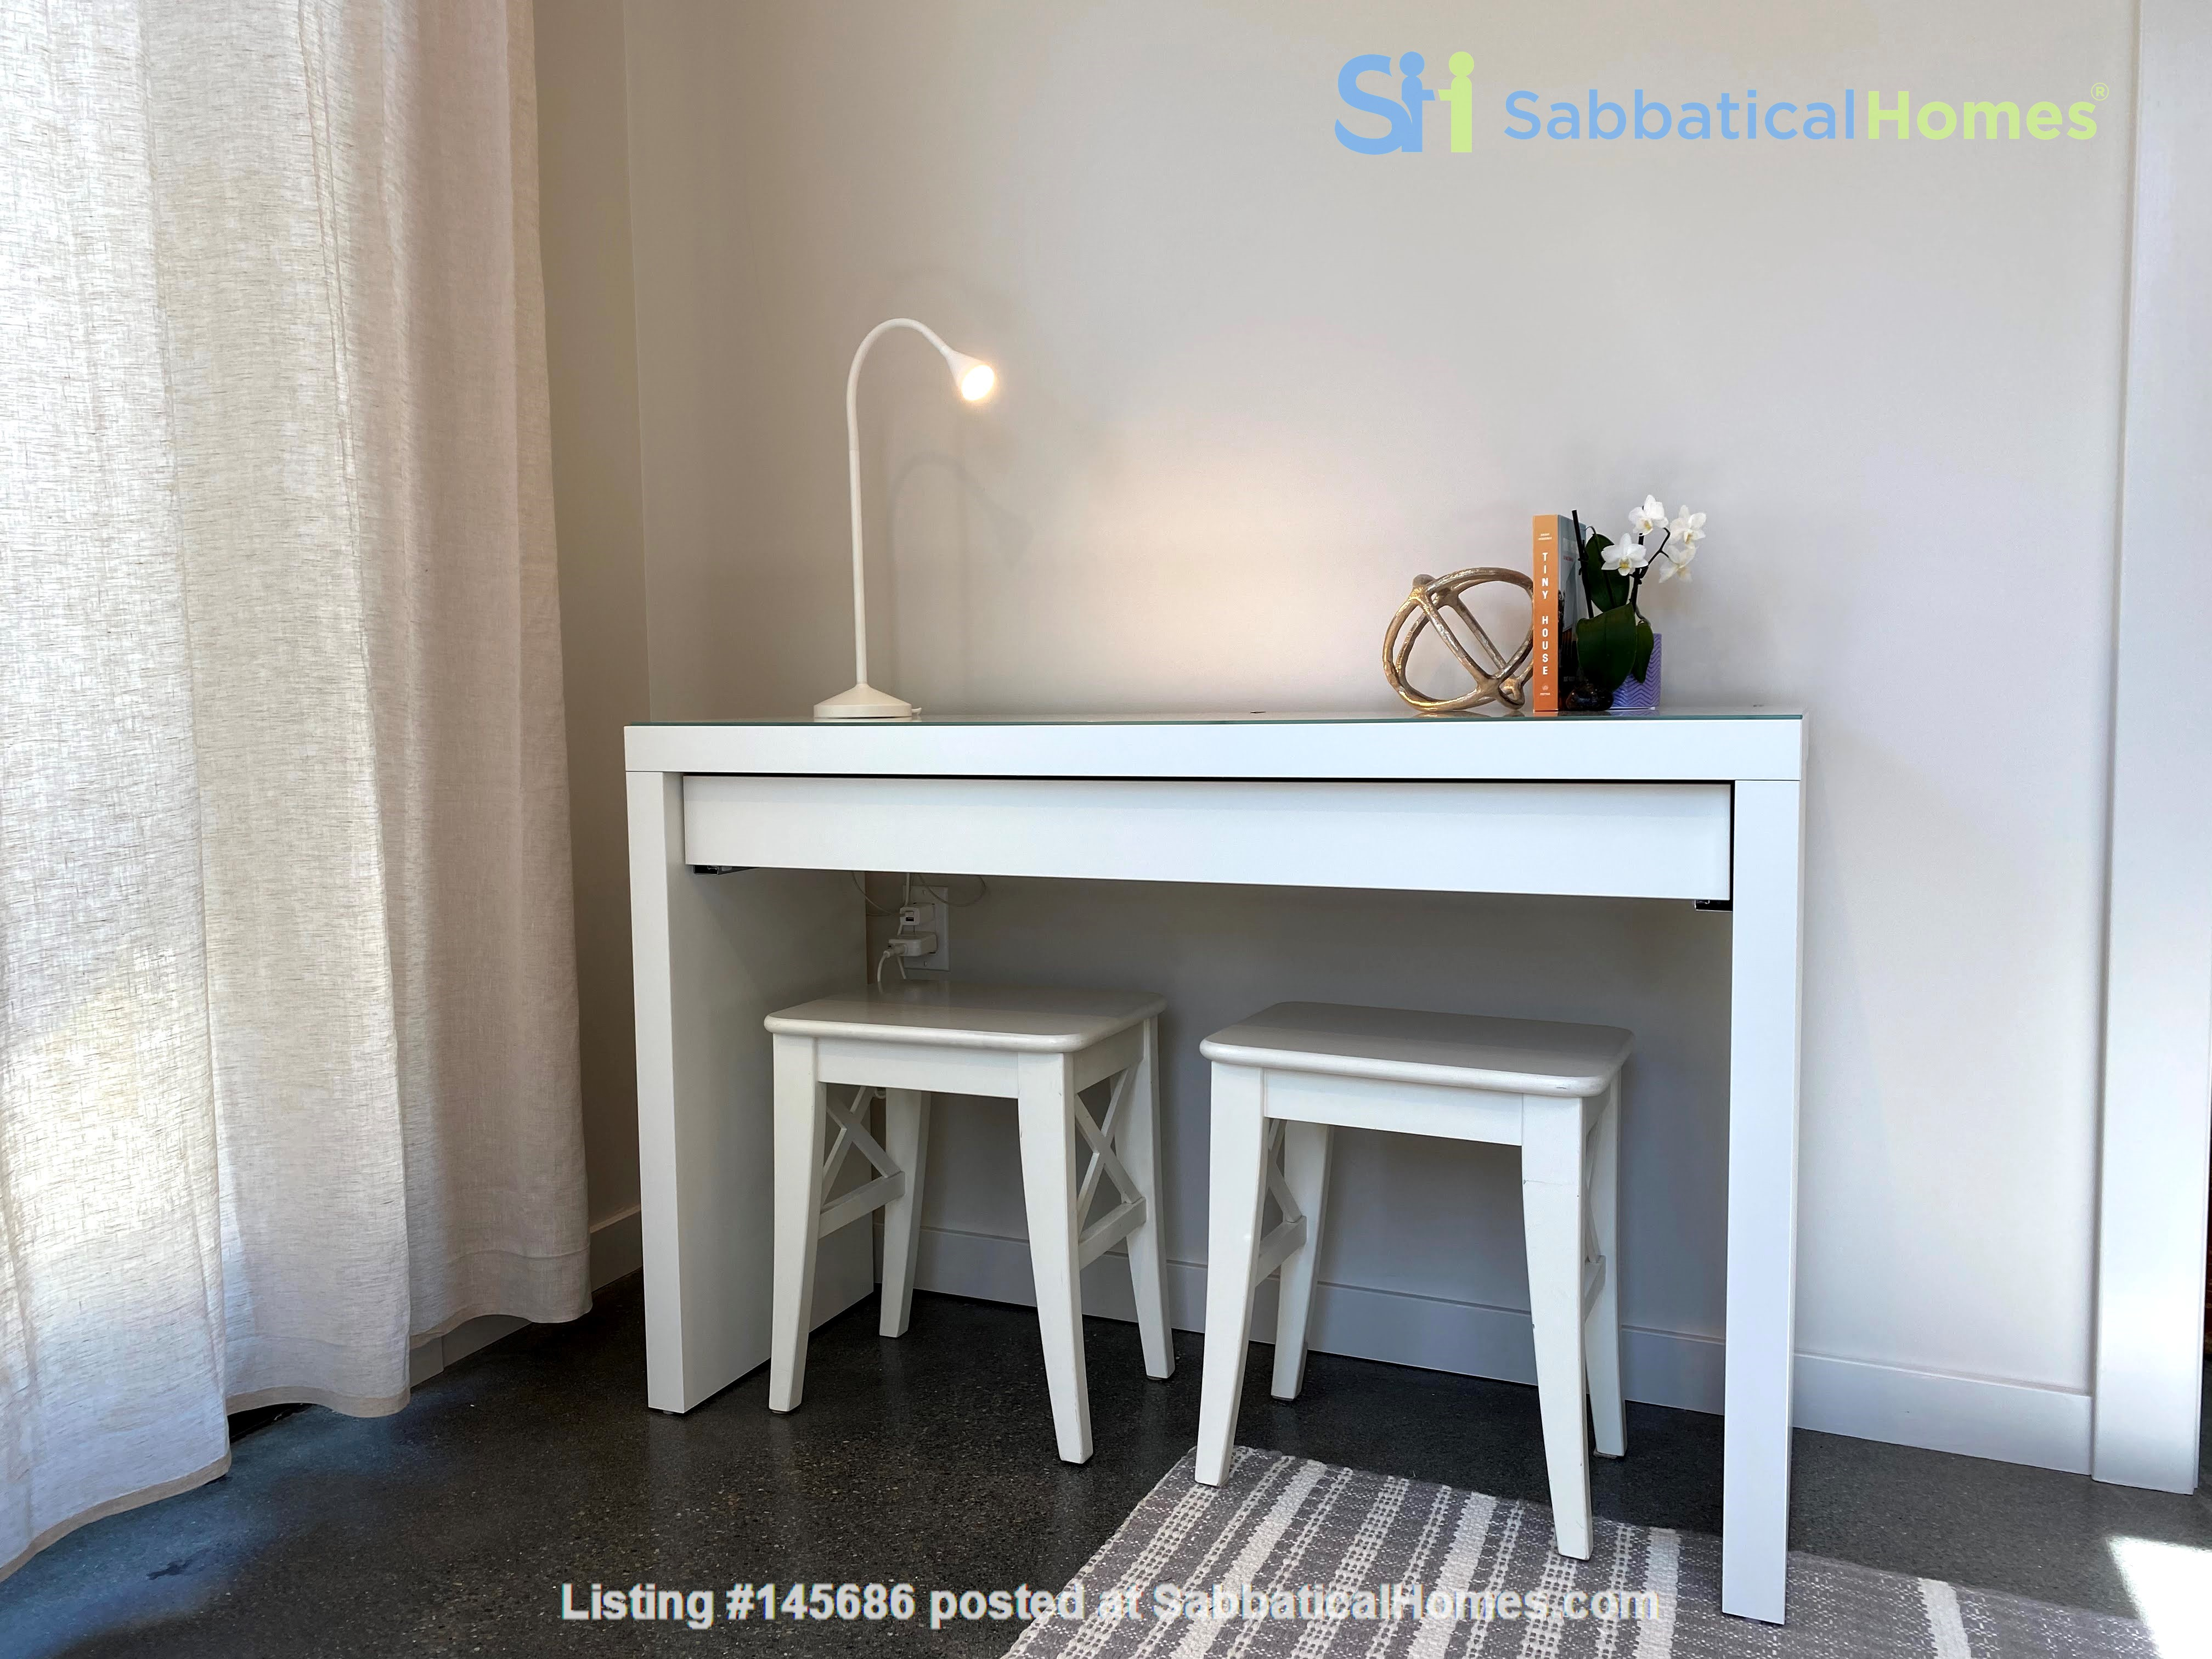 Newly Built Cosy and Modern South Berkeley Backyard Cottage - 1 Bed/1 Bath Home Rental in Berkeley 3